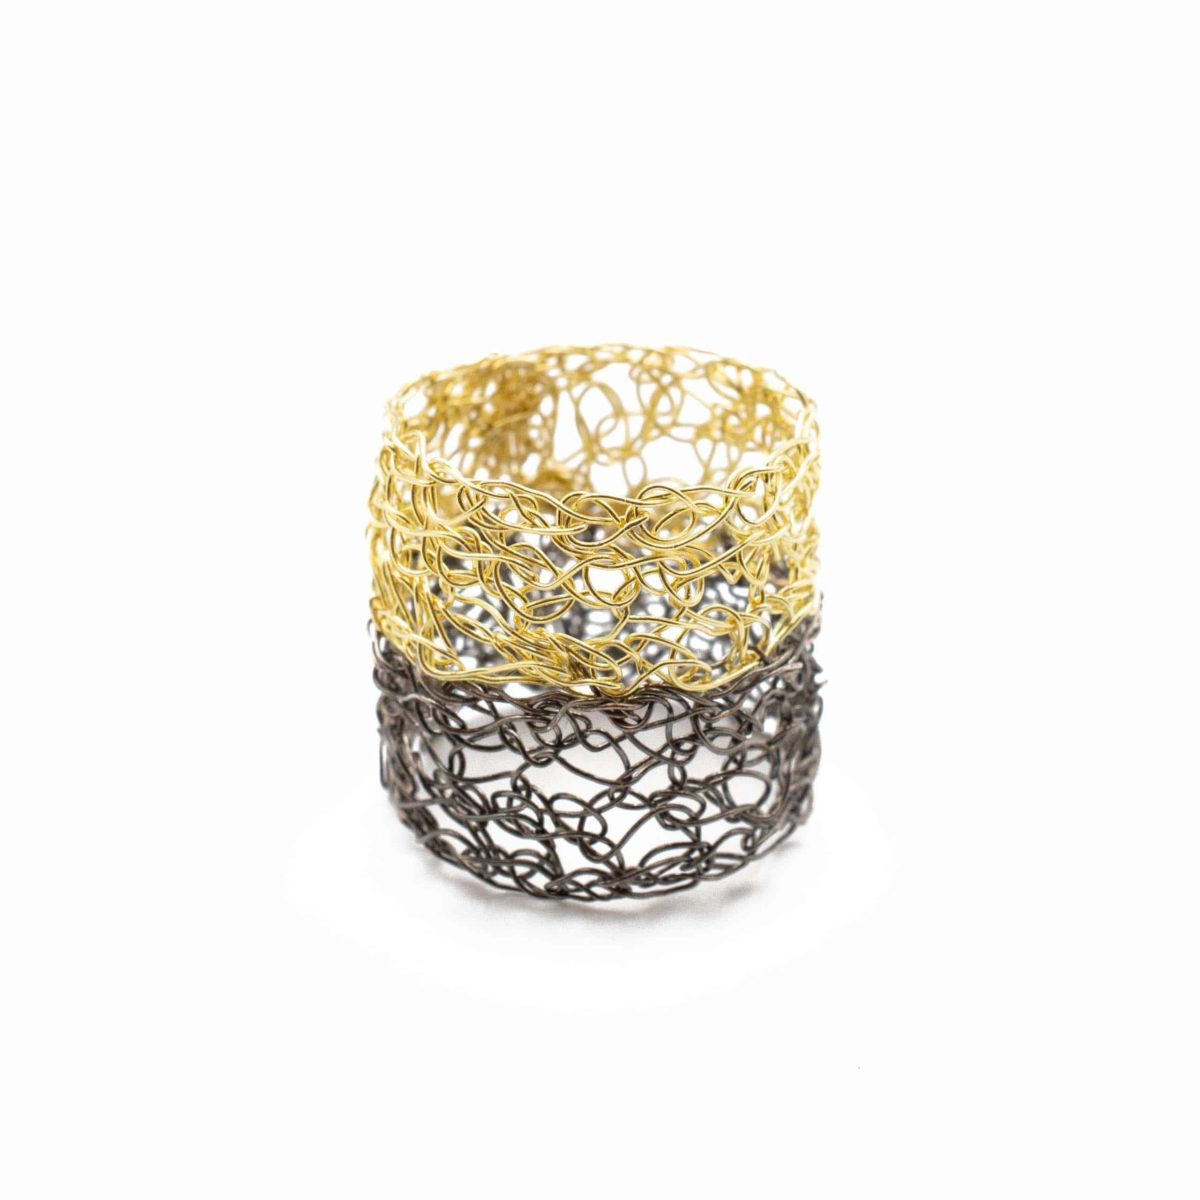 adjustable 18ct yellow gold and black band ring for women